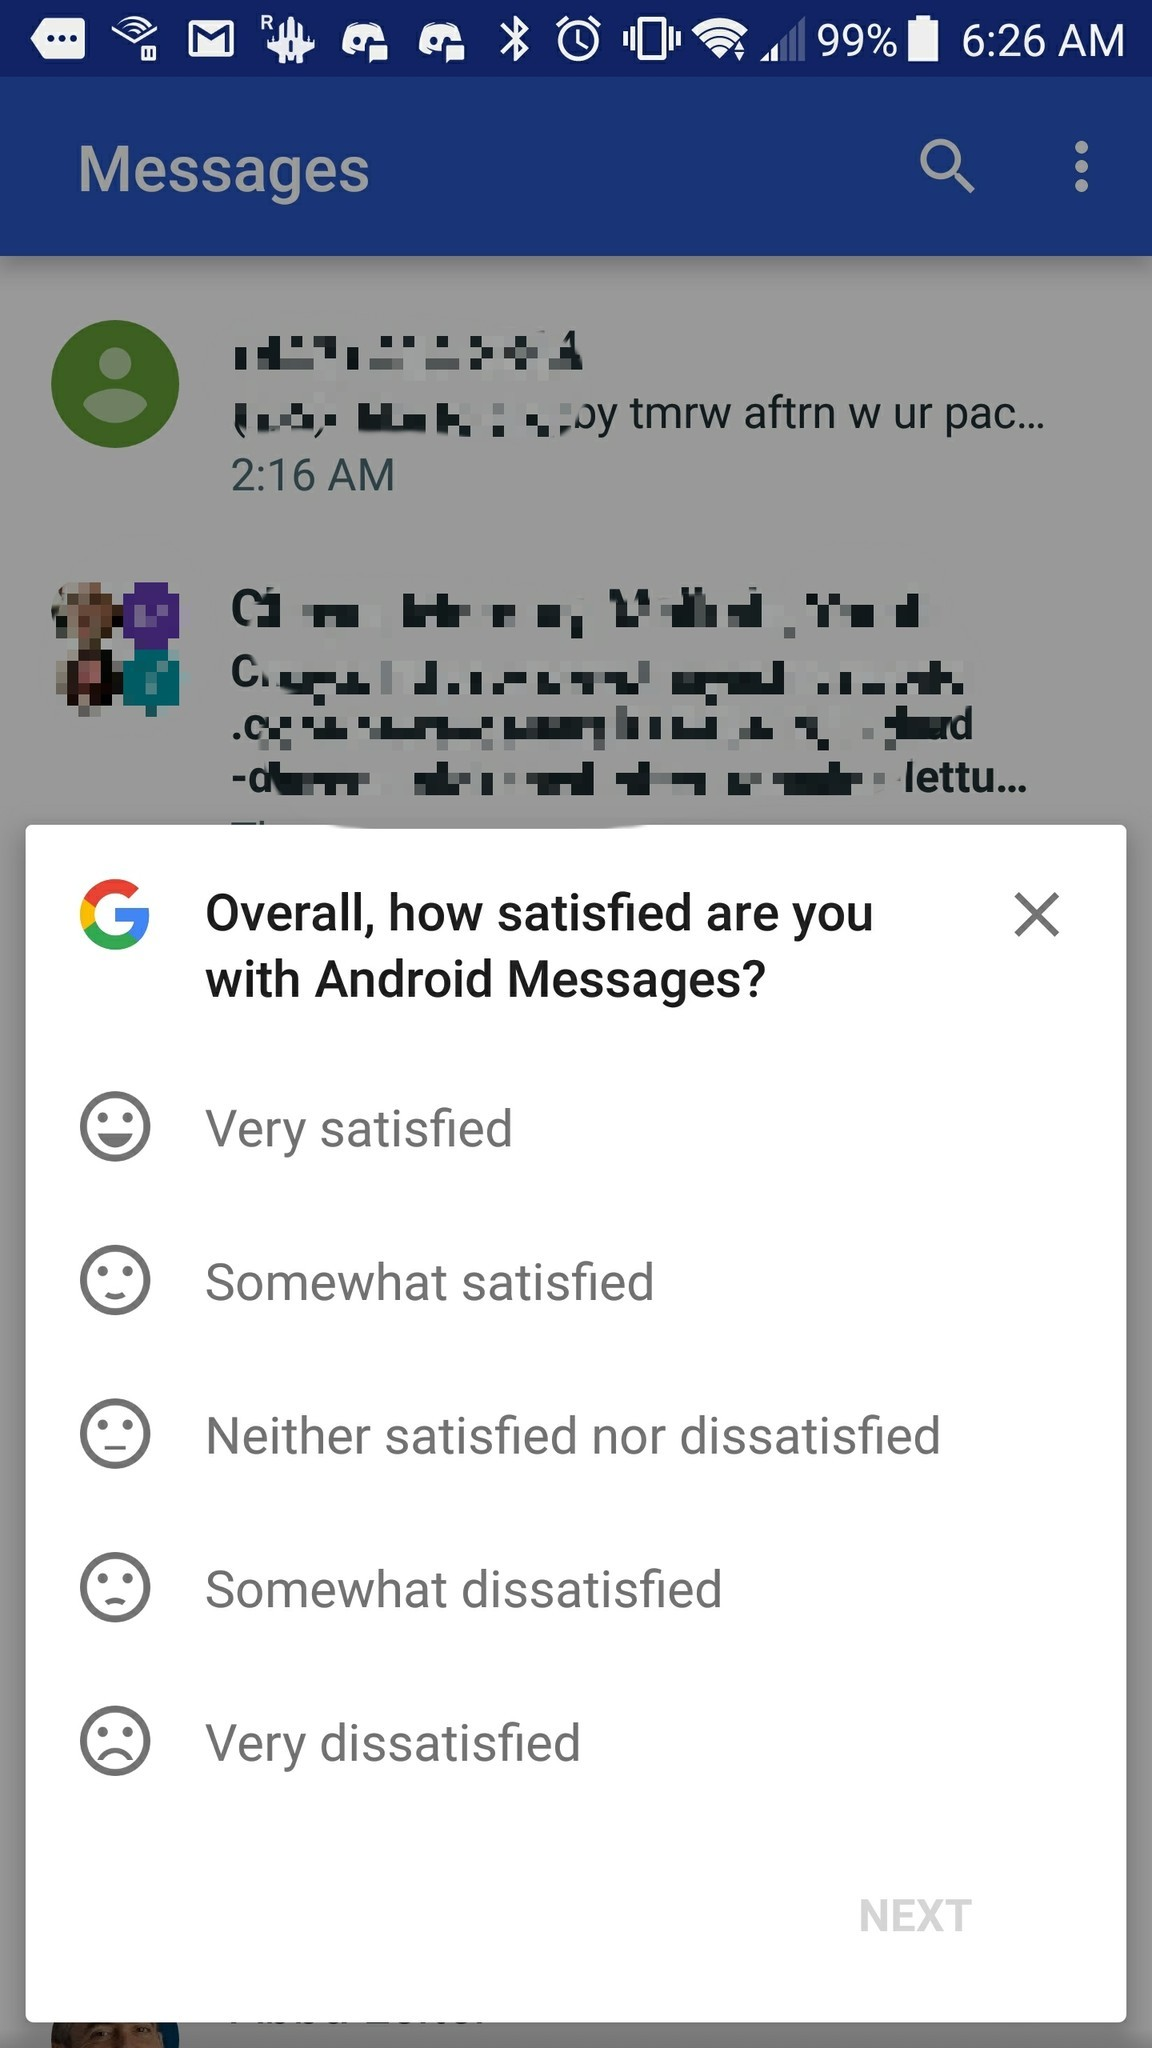 Google survey in Android Messages